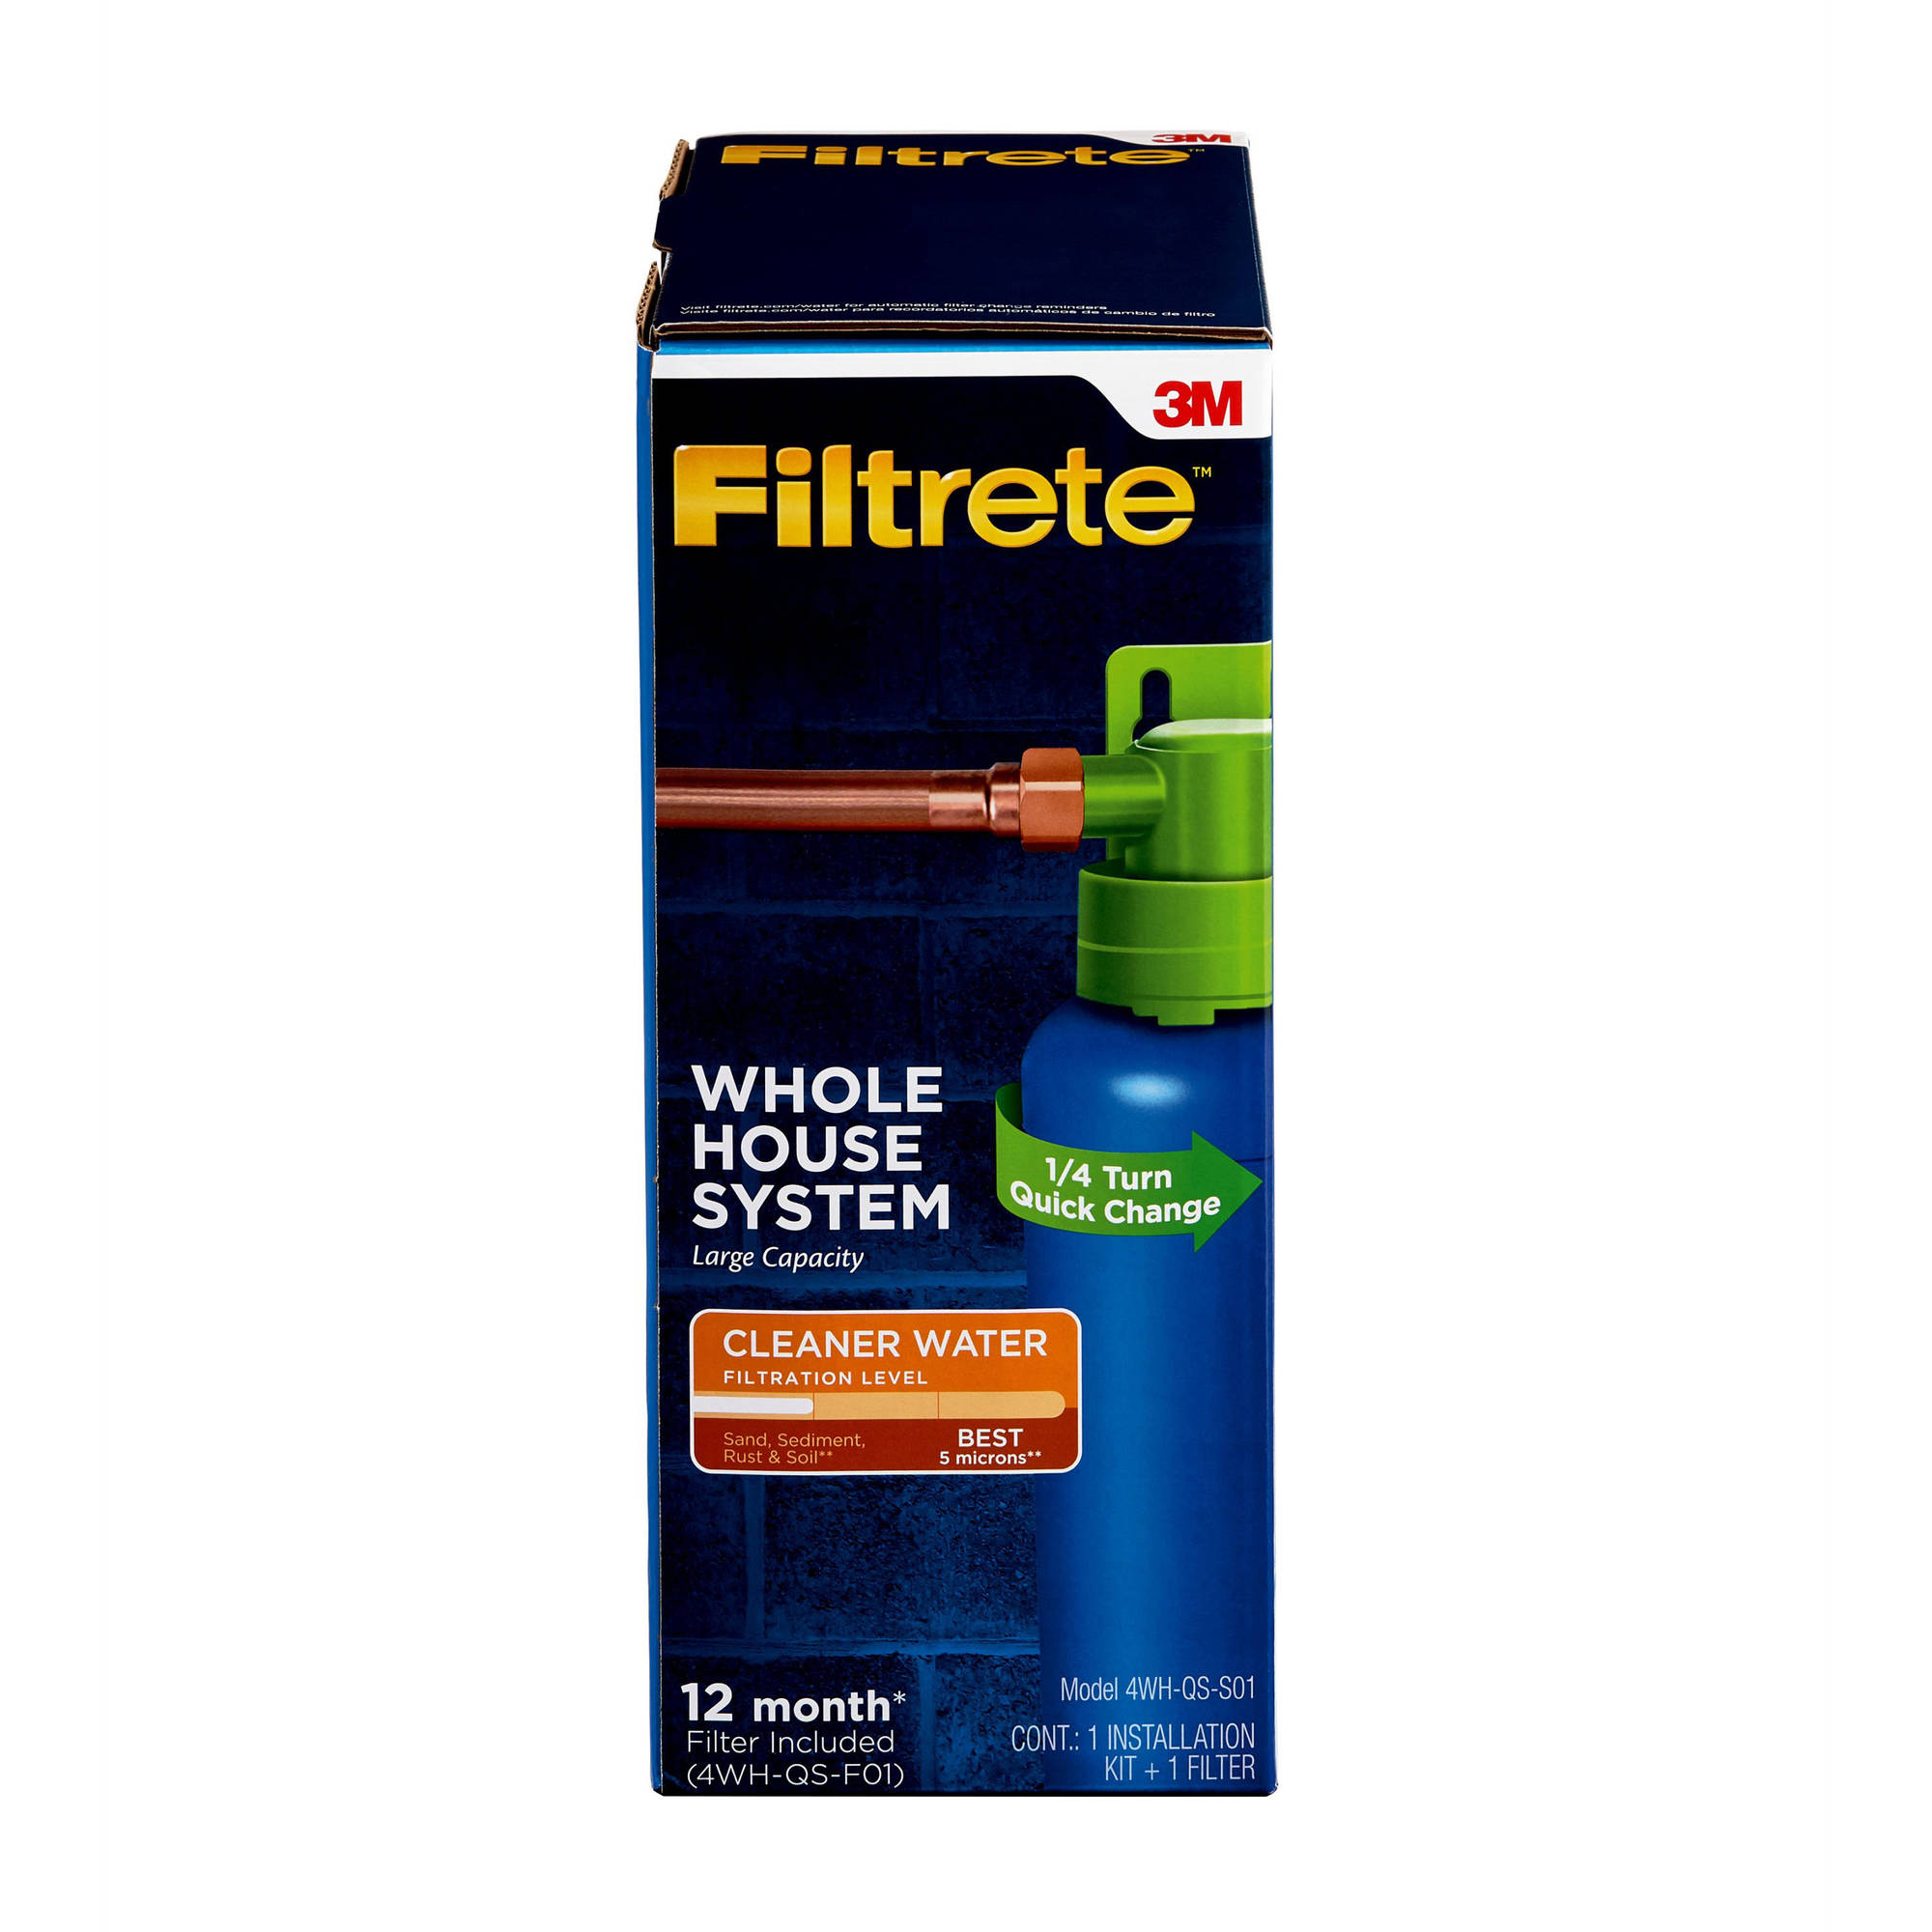 "Filtrete"" Quick Change Whole House System, Large Capacity, Basic Filtration (sediment)"